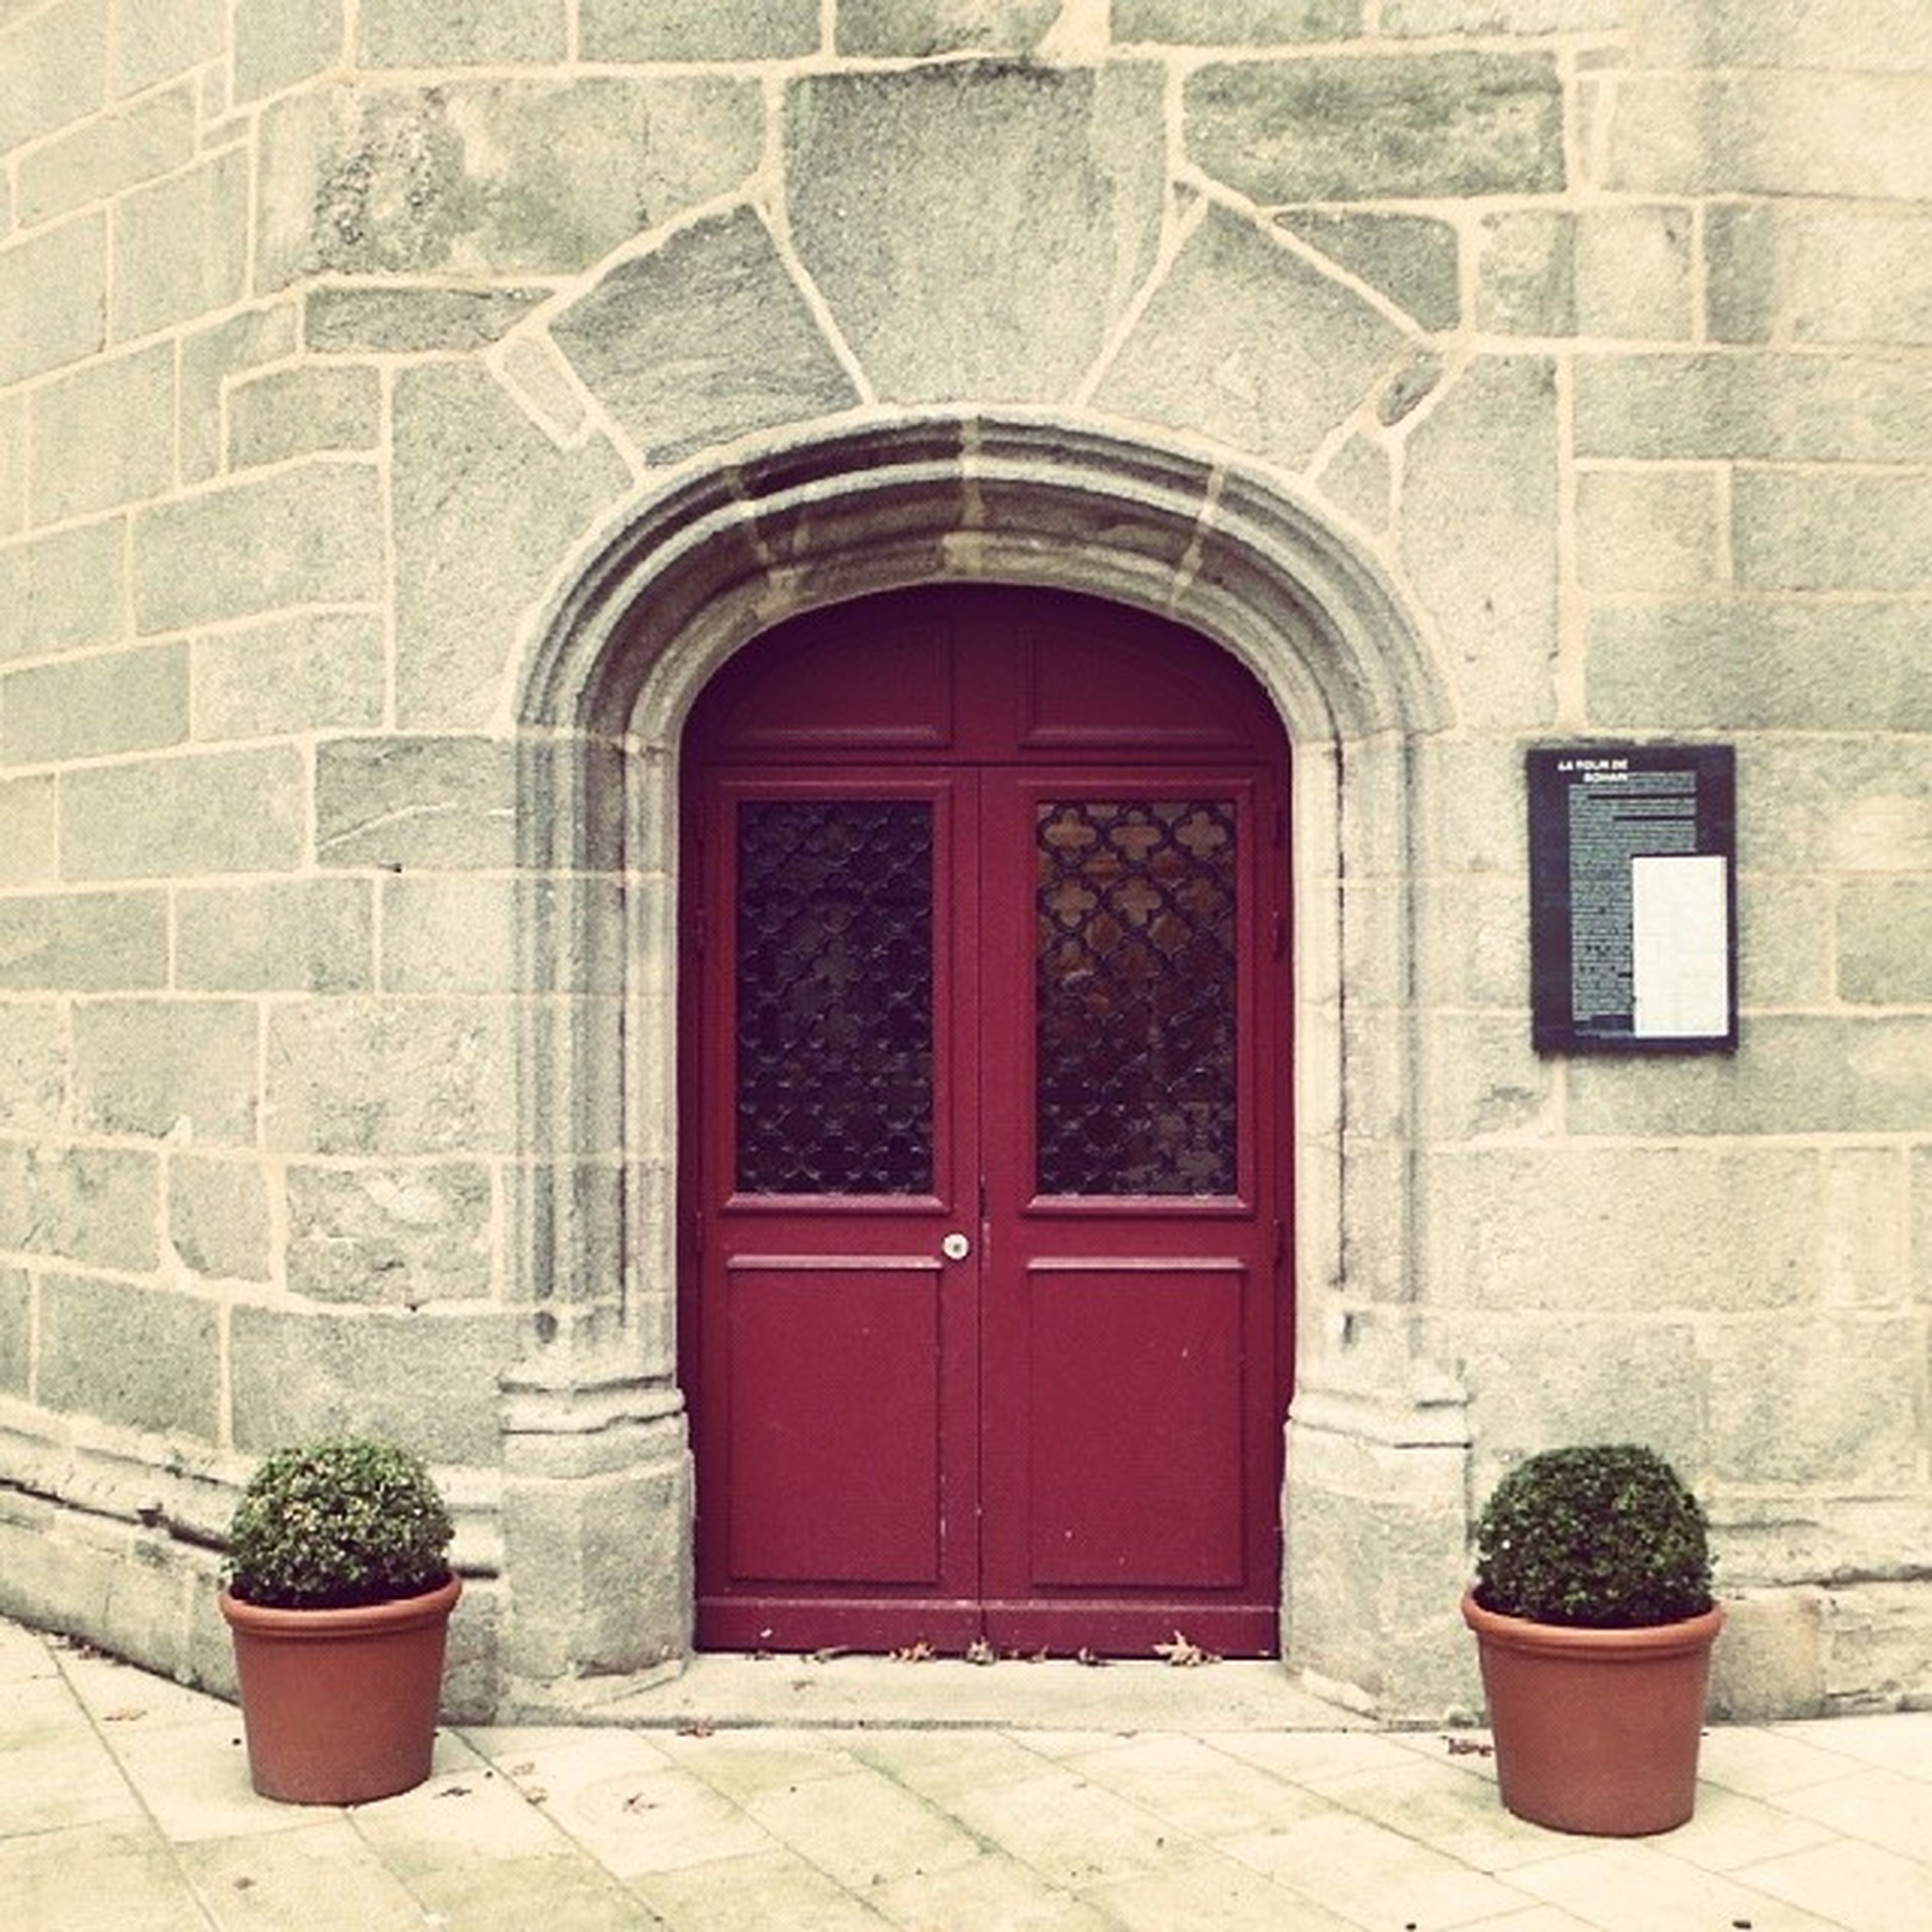 architecture, built structure, building exterior, door, potted plant, closed, red, window, entrance, house, arch, brick wall, wall - building feature, plant, wall, flower pot, day, facade, no people, outdoors